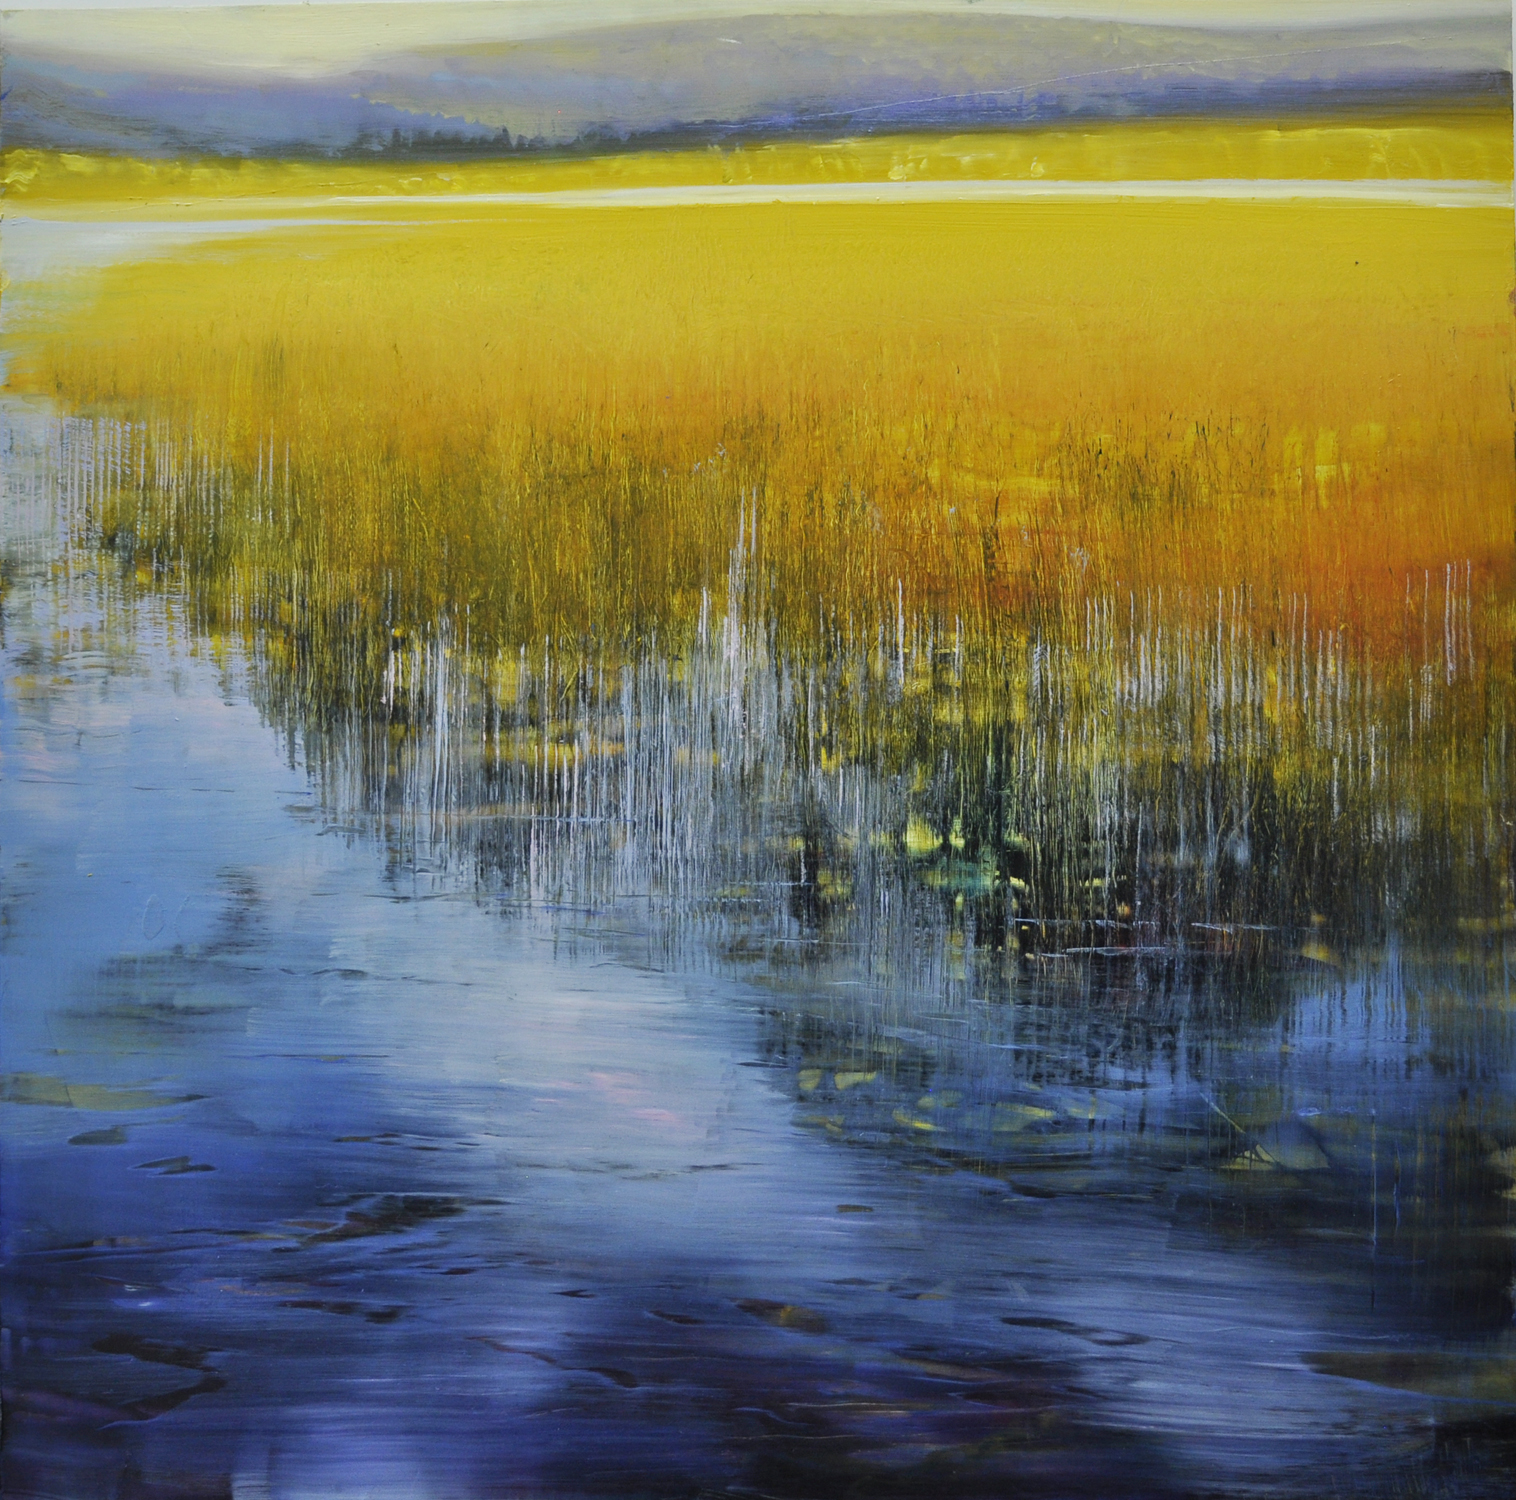 """Lake, Marsh and Mountain"", oil on enameled laminated aluminum, 24x24, $3,500"